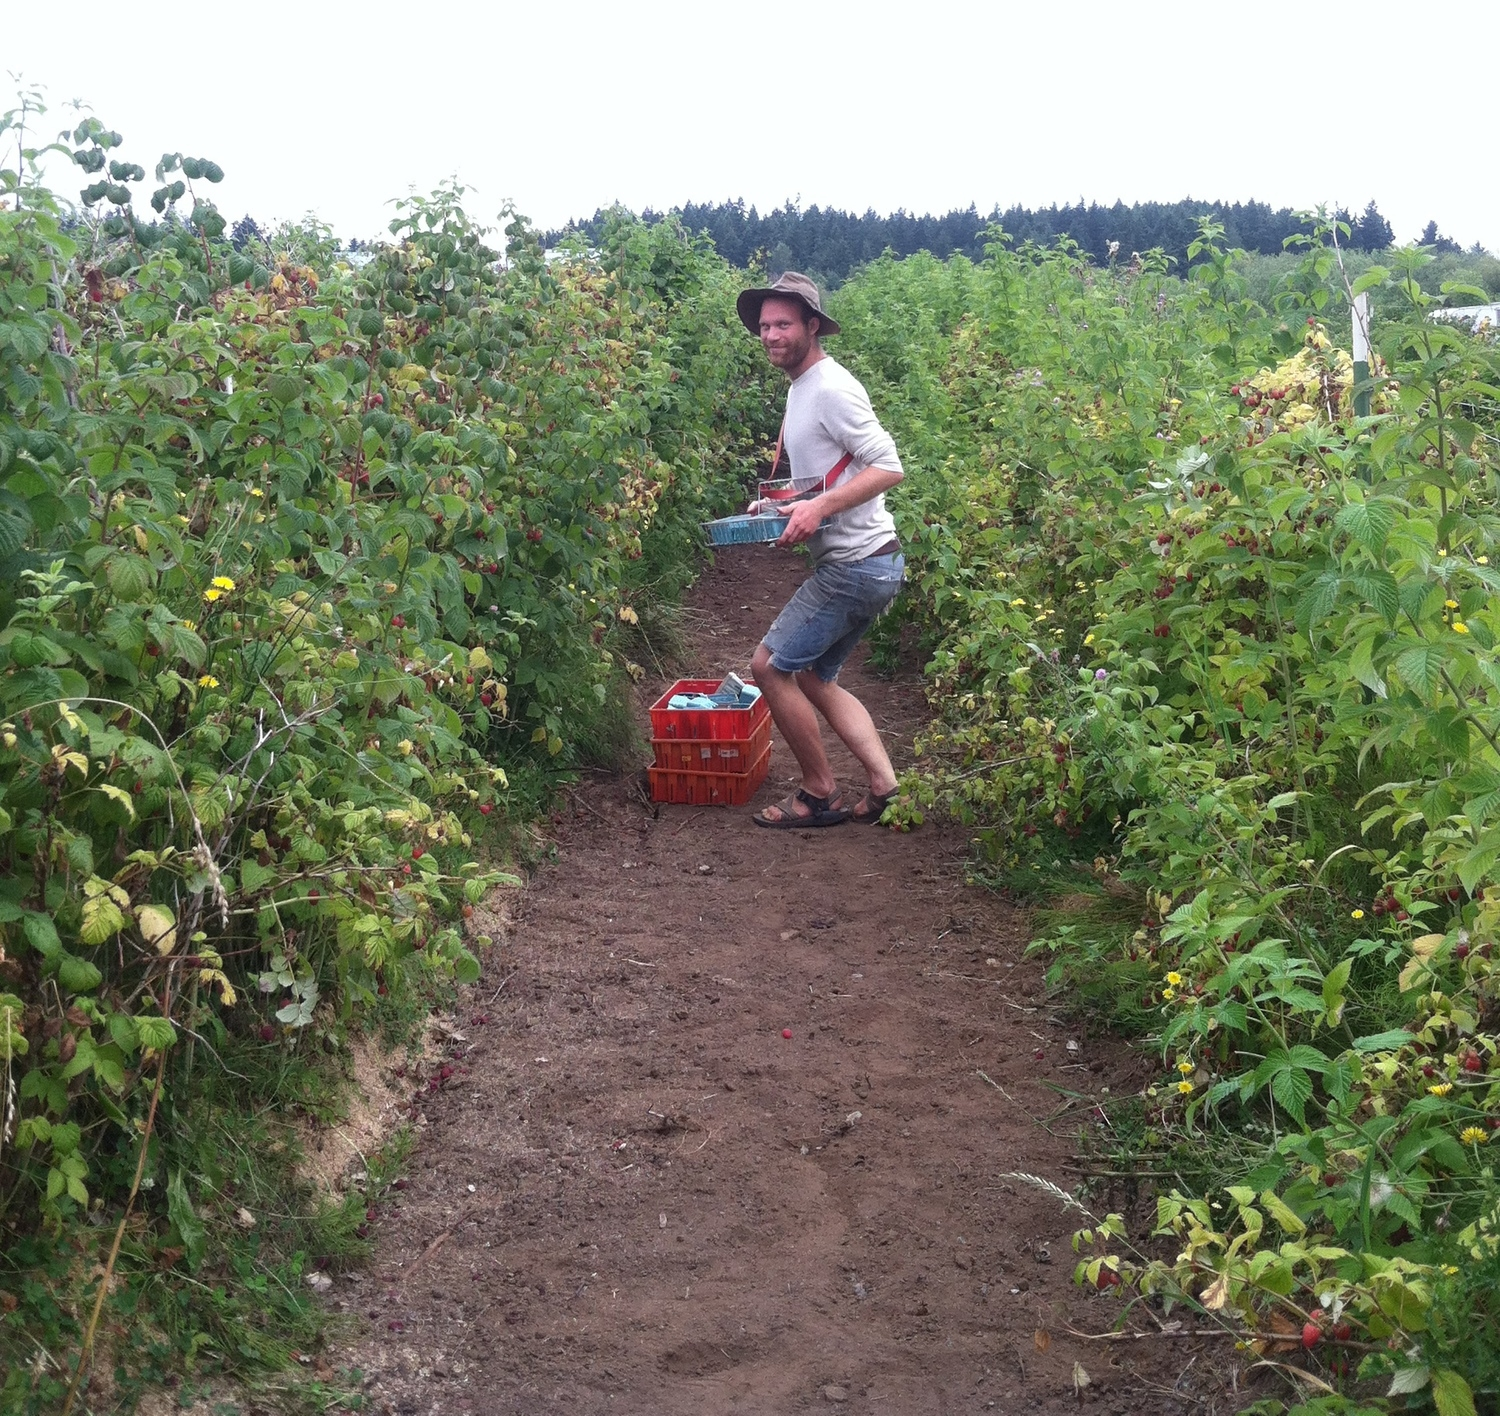 Are those raspberries in your basket or are you just happy to see me? With Chris Faroe at Spring Rain Farm PT WA.